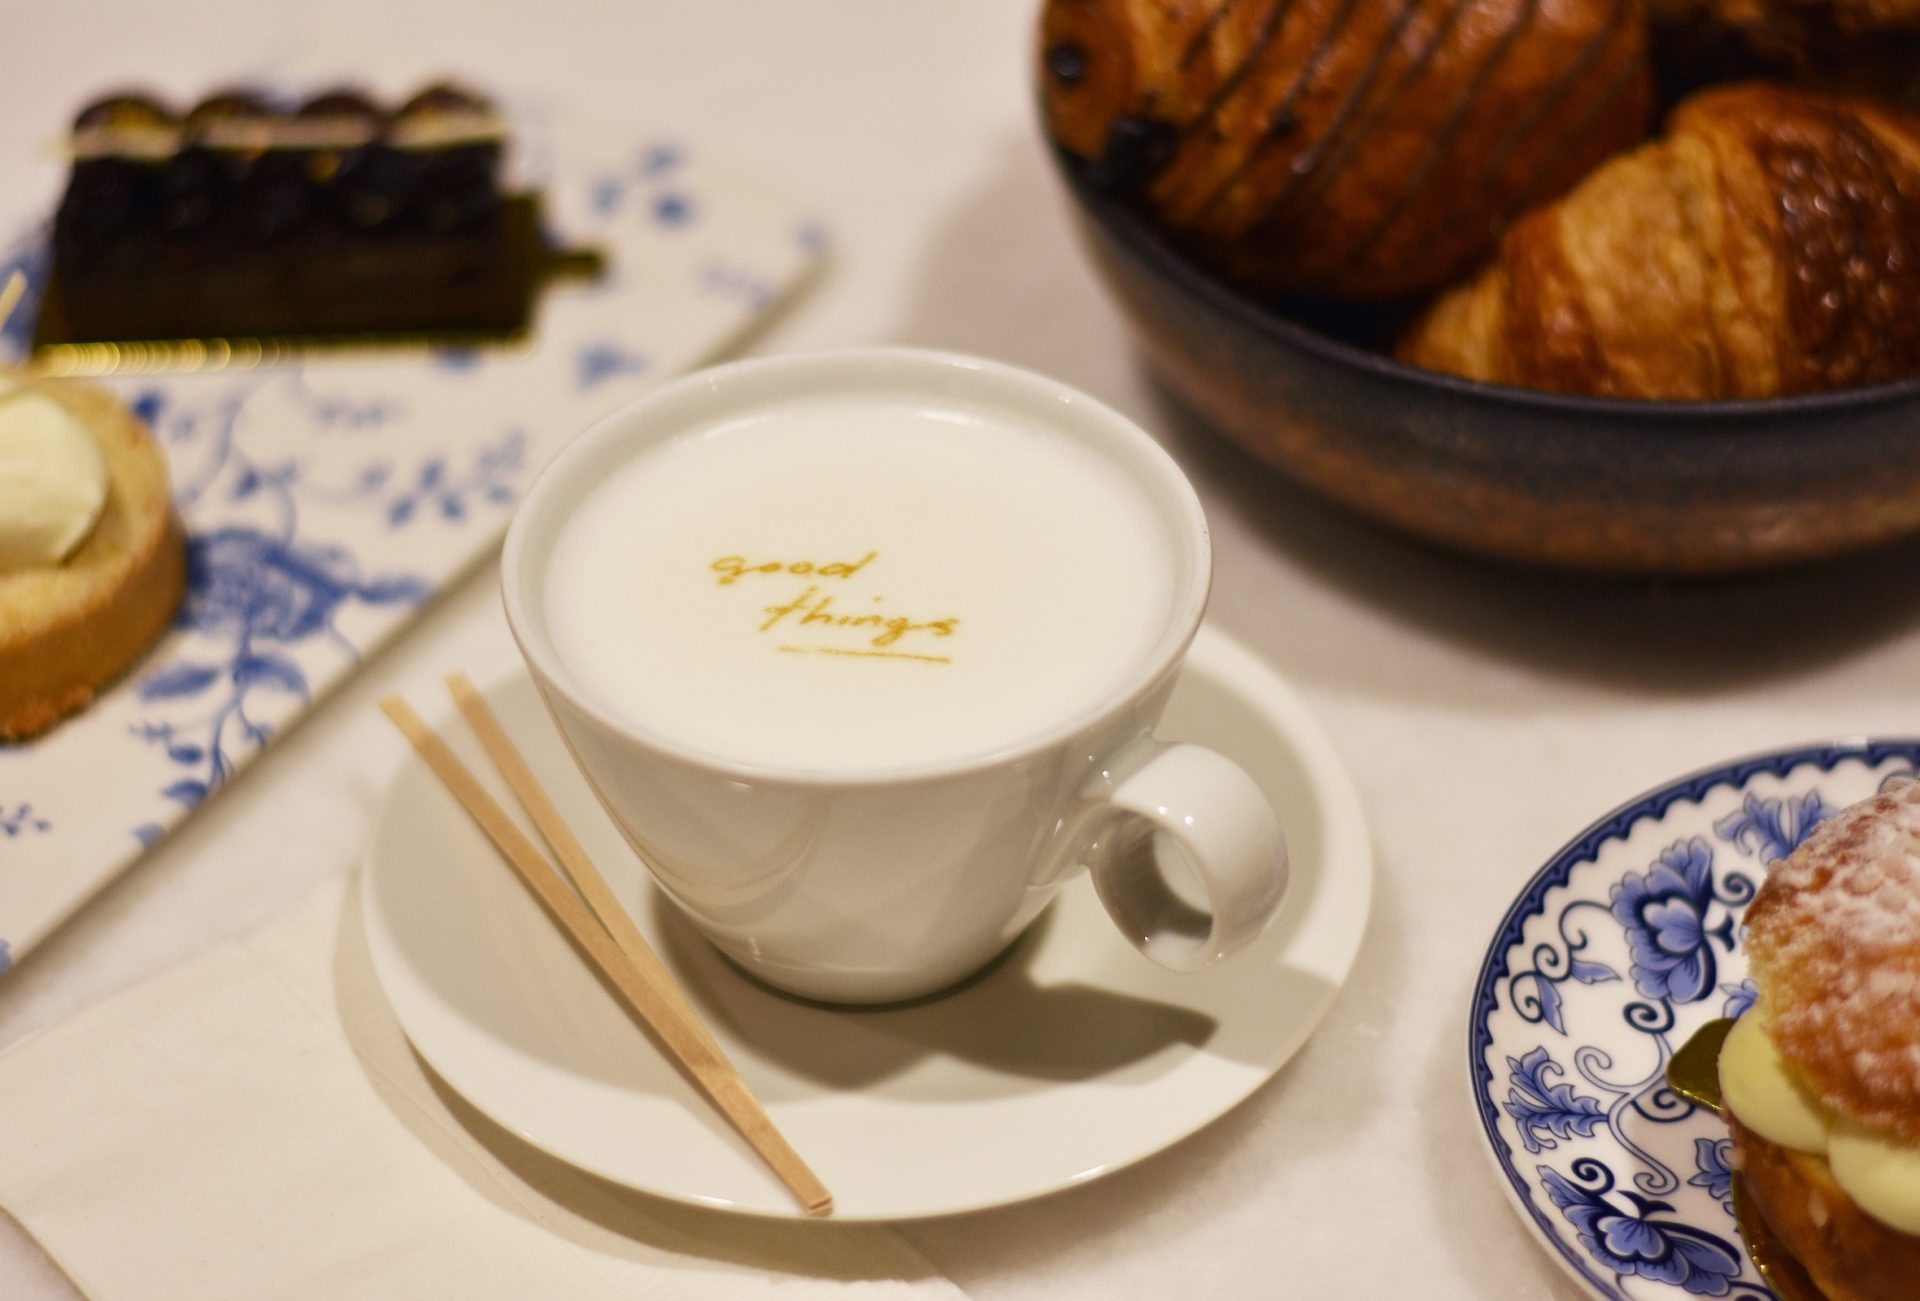 Coffee with Good Things logo showing delicately in the cream surrounded by desserts and pastries